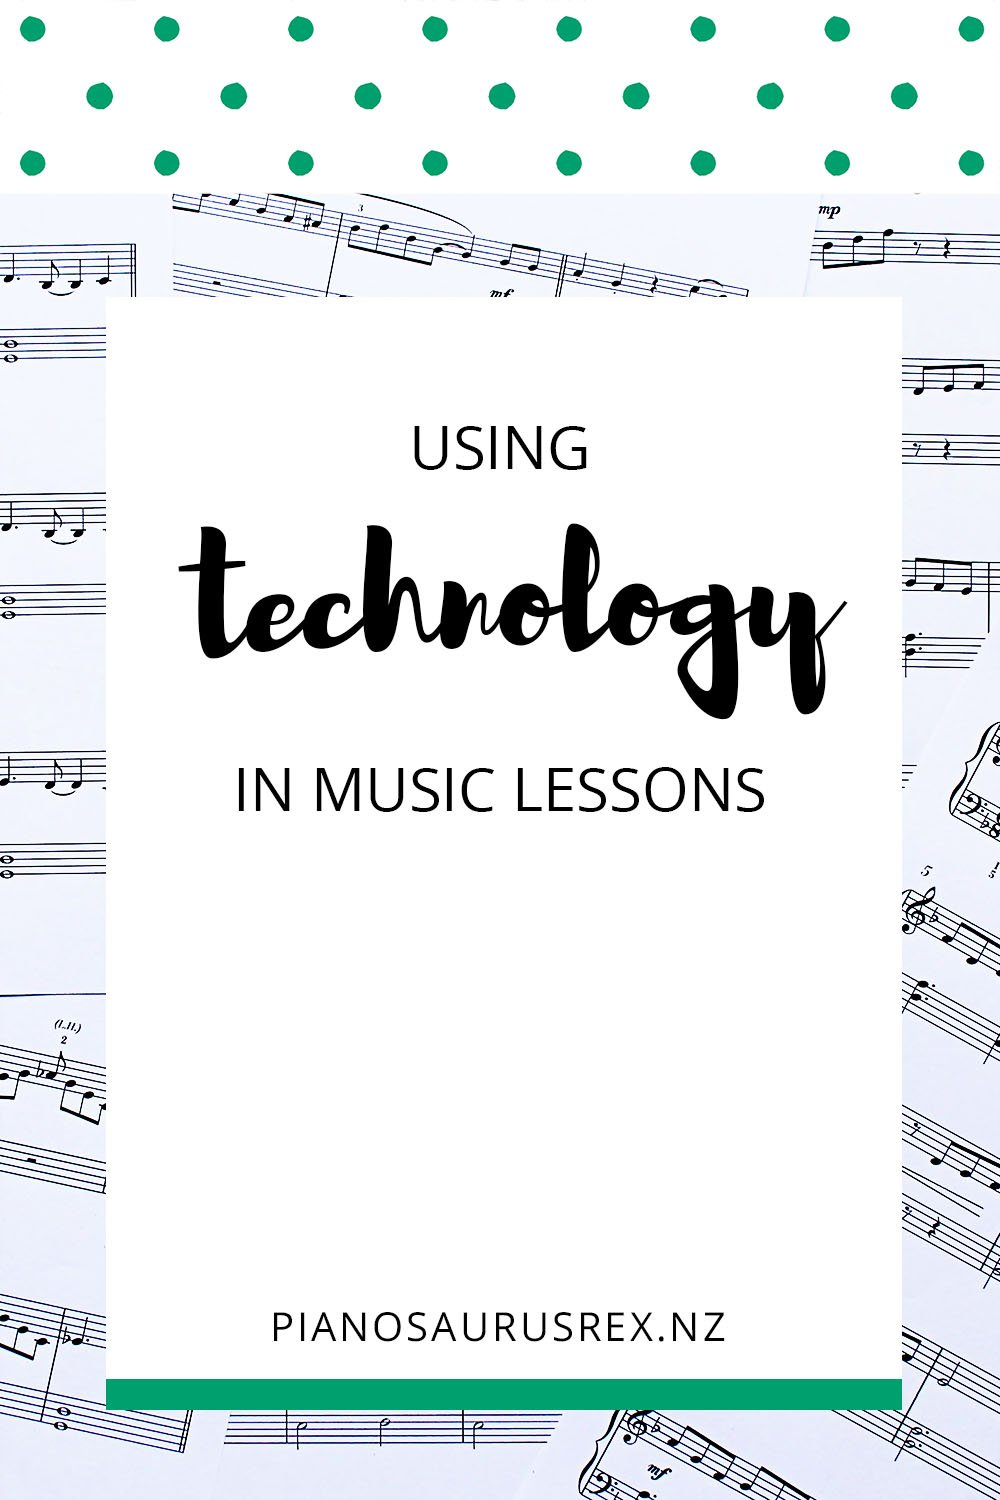 Using Technology In Music Lessons